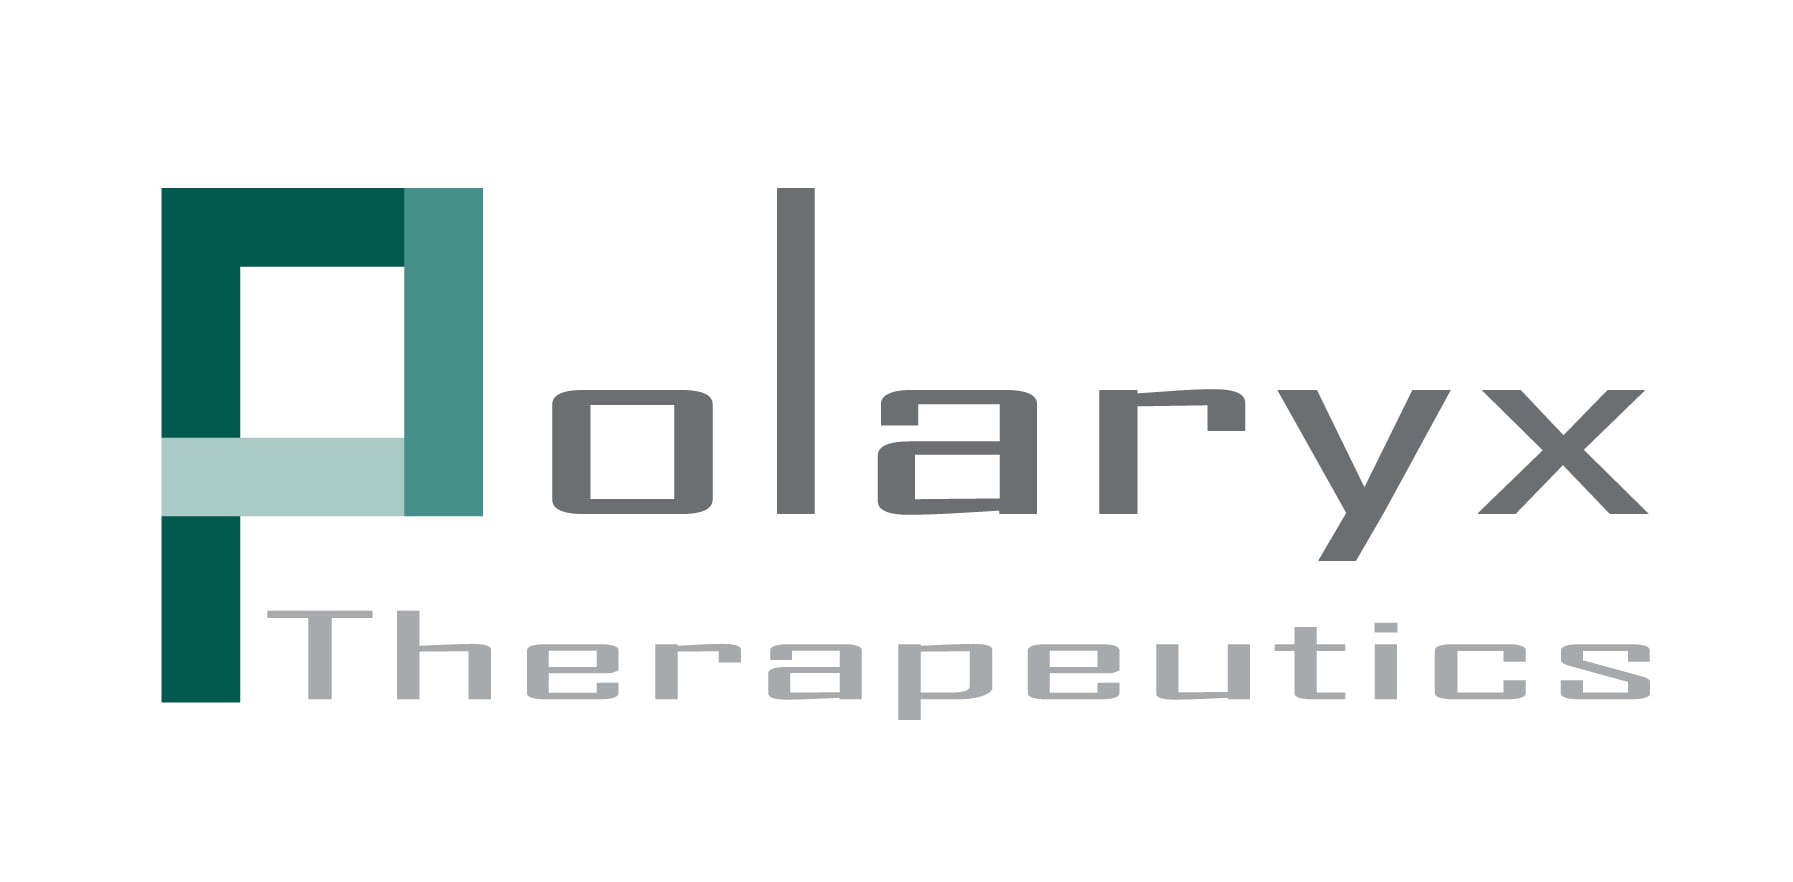 Polaryx Therapeutics Receives Both Rare Pediatric Disease and Orphan Drug Designations for the Treatment of Krabbe Disease With PLX-300